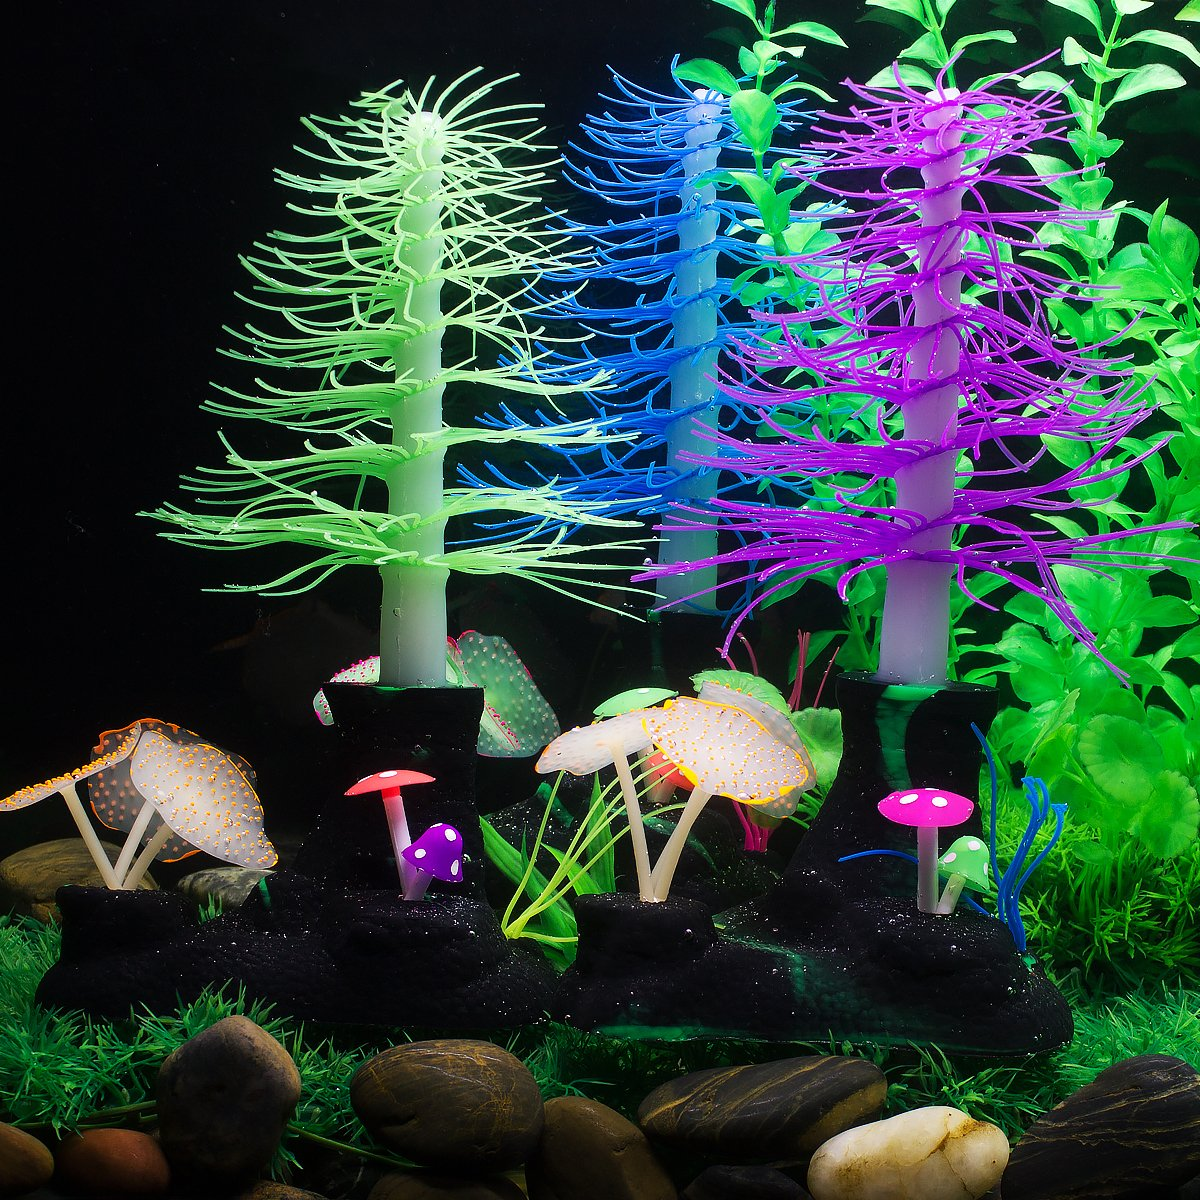 saim aquarium artificial decorative christmas tree with mushroom coral plants ornament decor for fish tank decorations - Christmas Aquarium Decorations